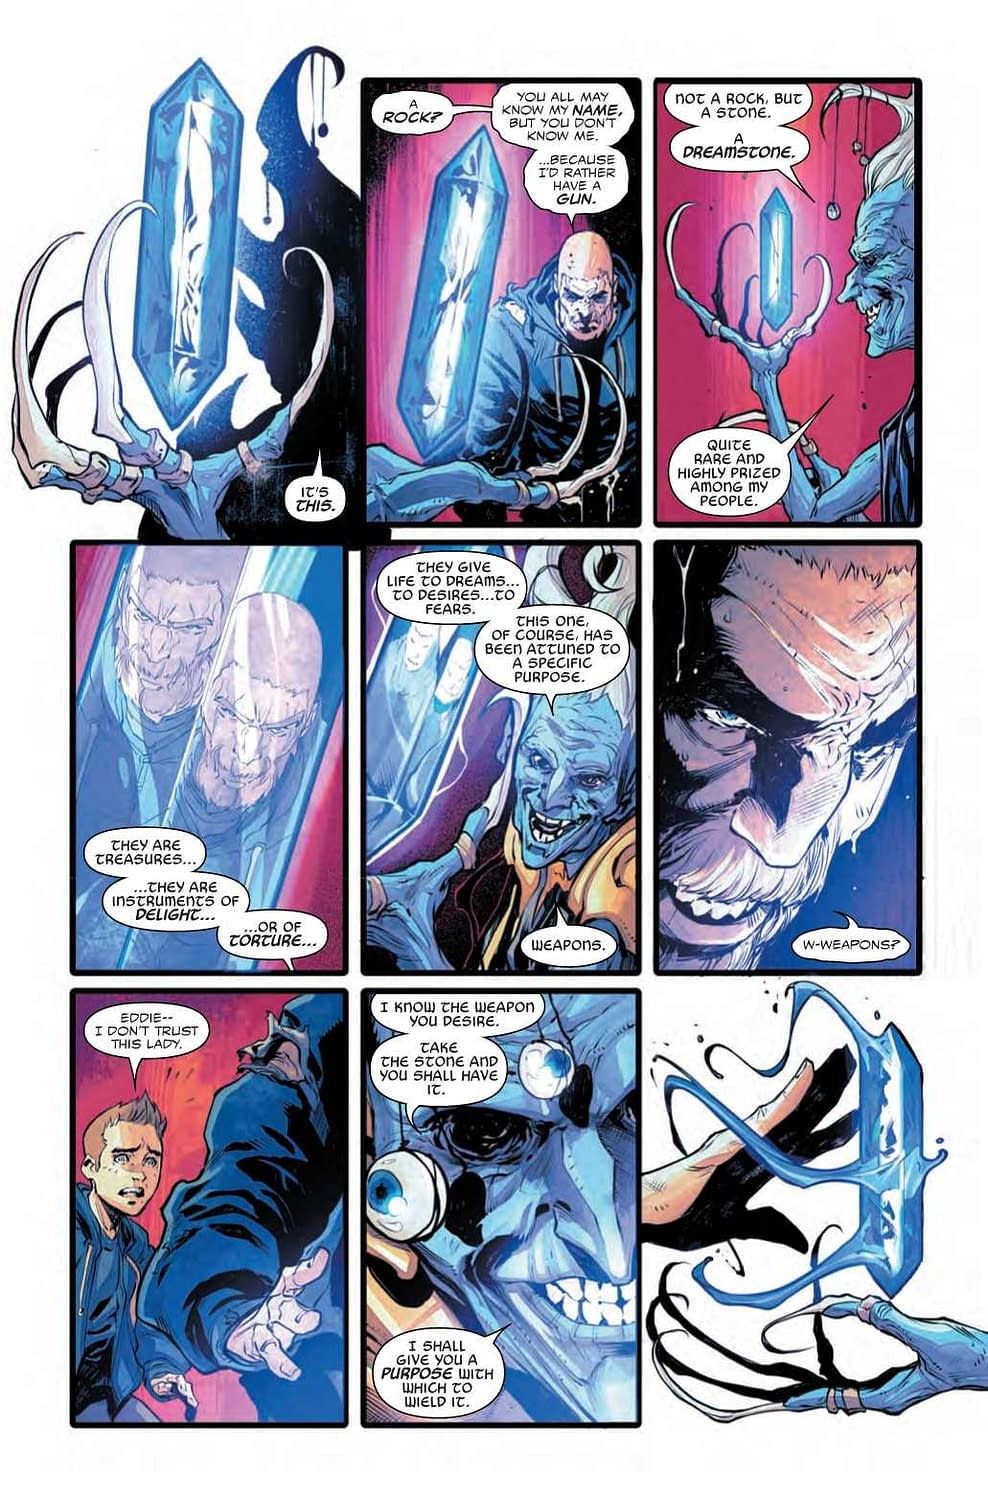 Does Venom Join the Wrong Side of the War of the Realms? War of the Realms: Venom #1 Preview